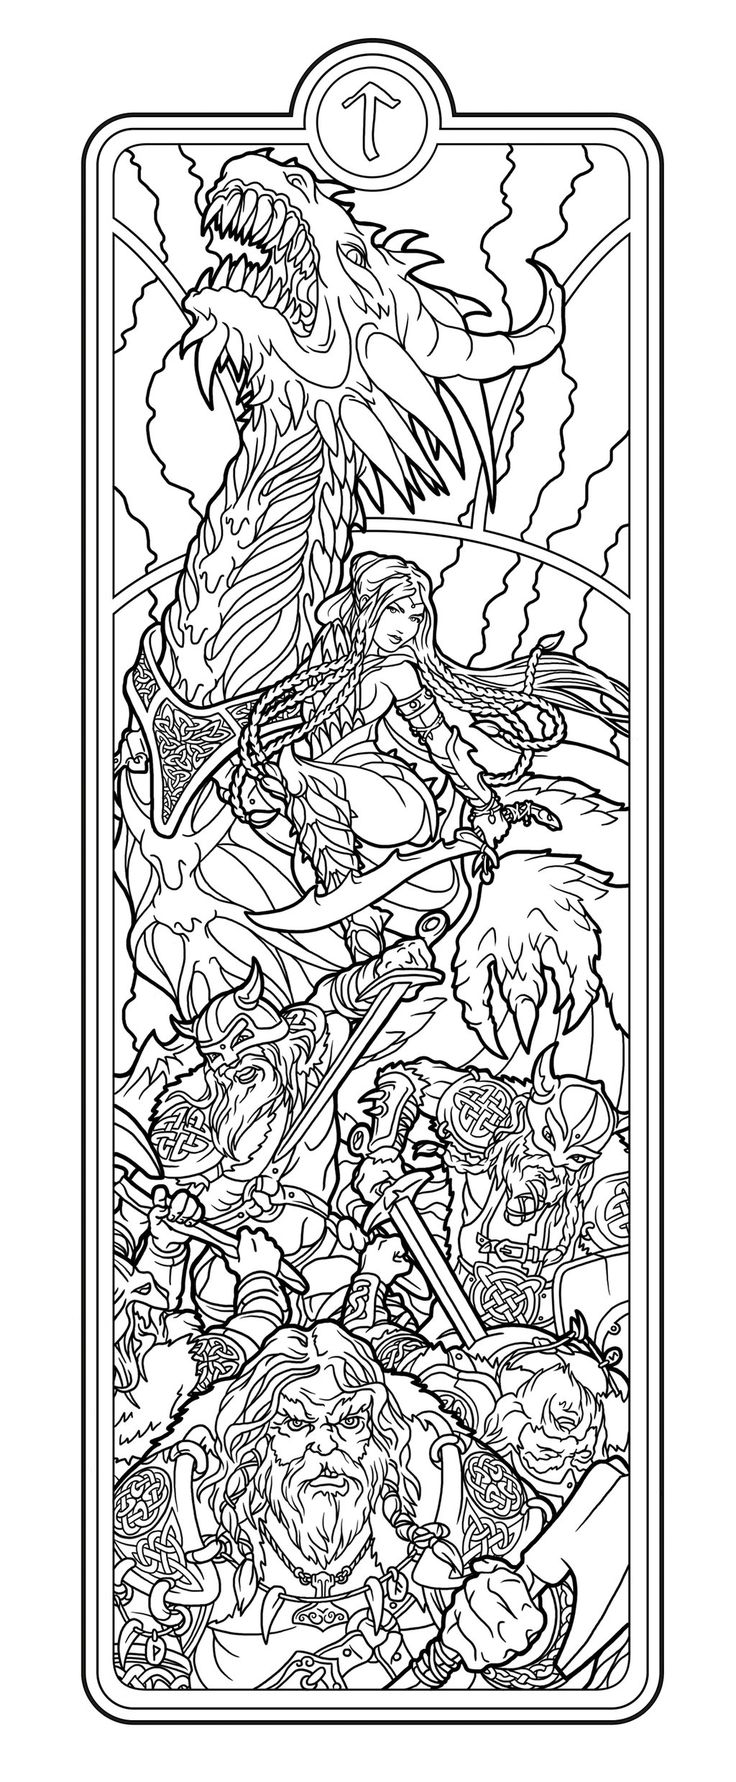 237 best fantasy coloring images on pinterest coloring books